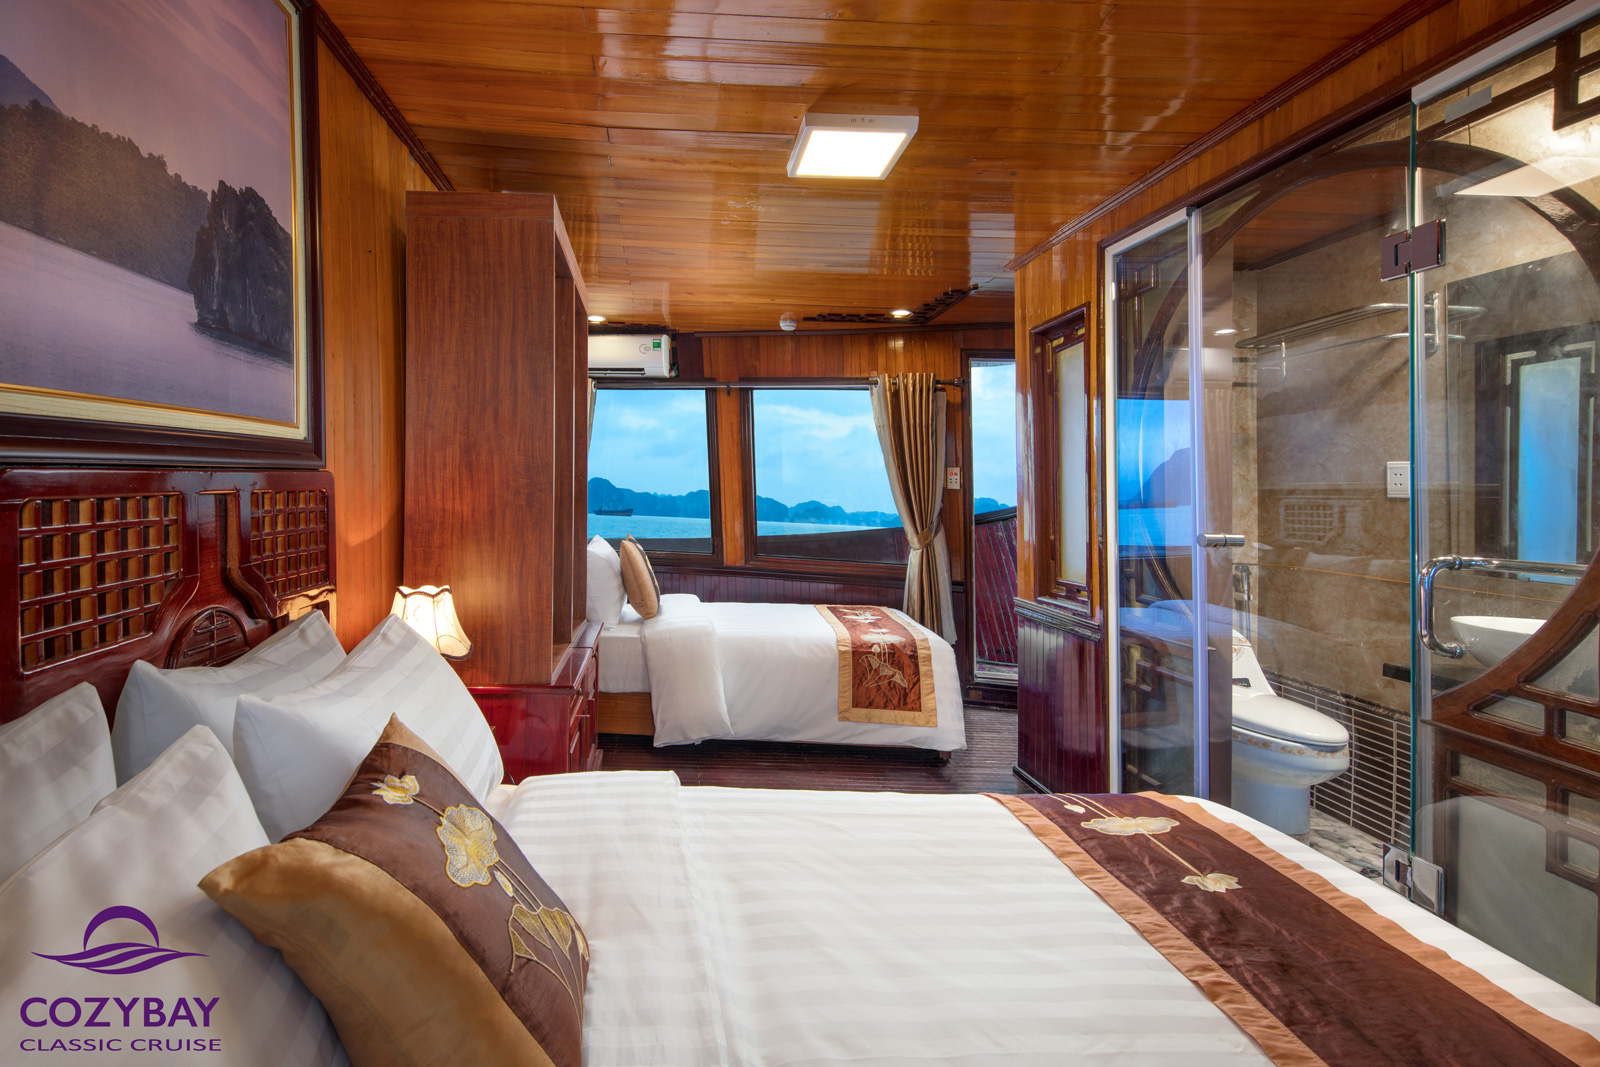 cozy bay classic cruise, deluxe triple cabin